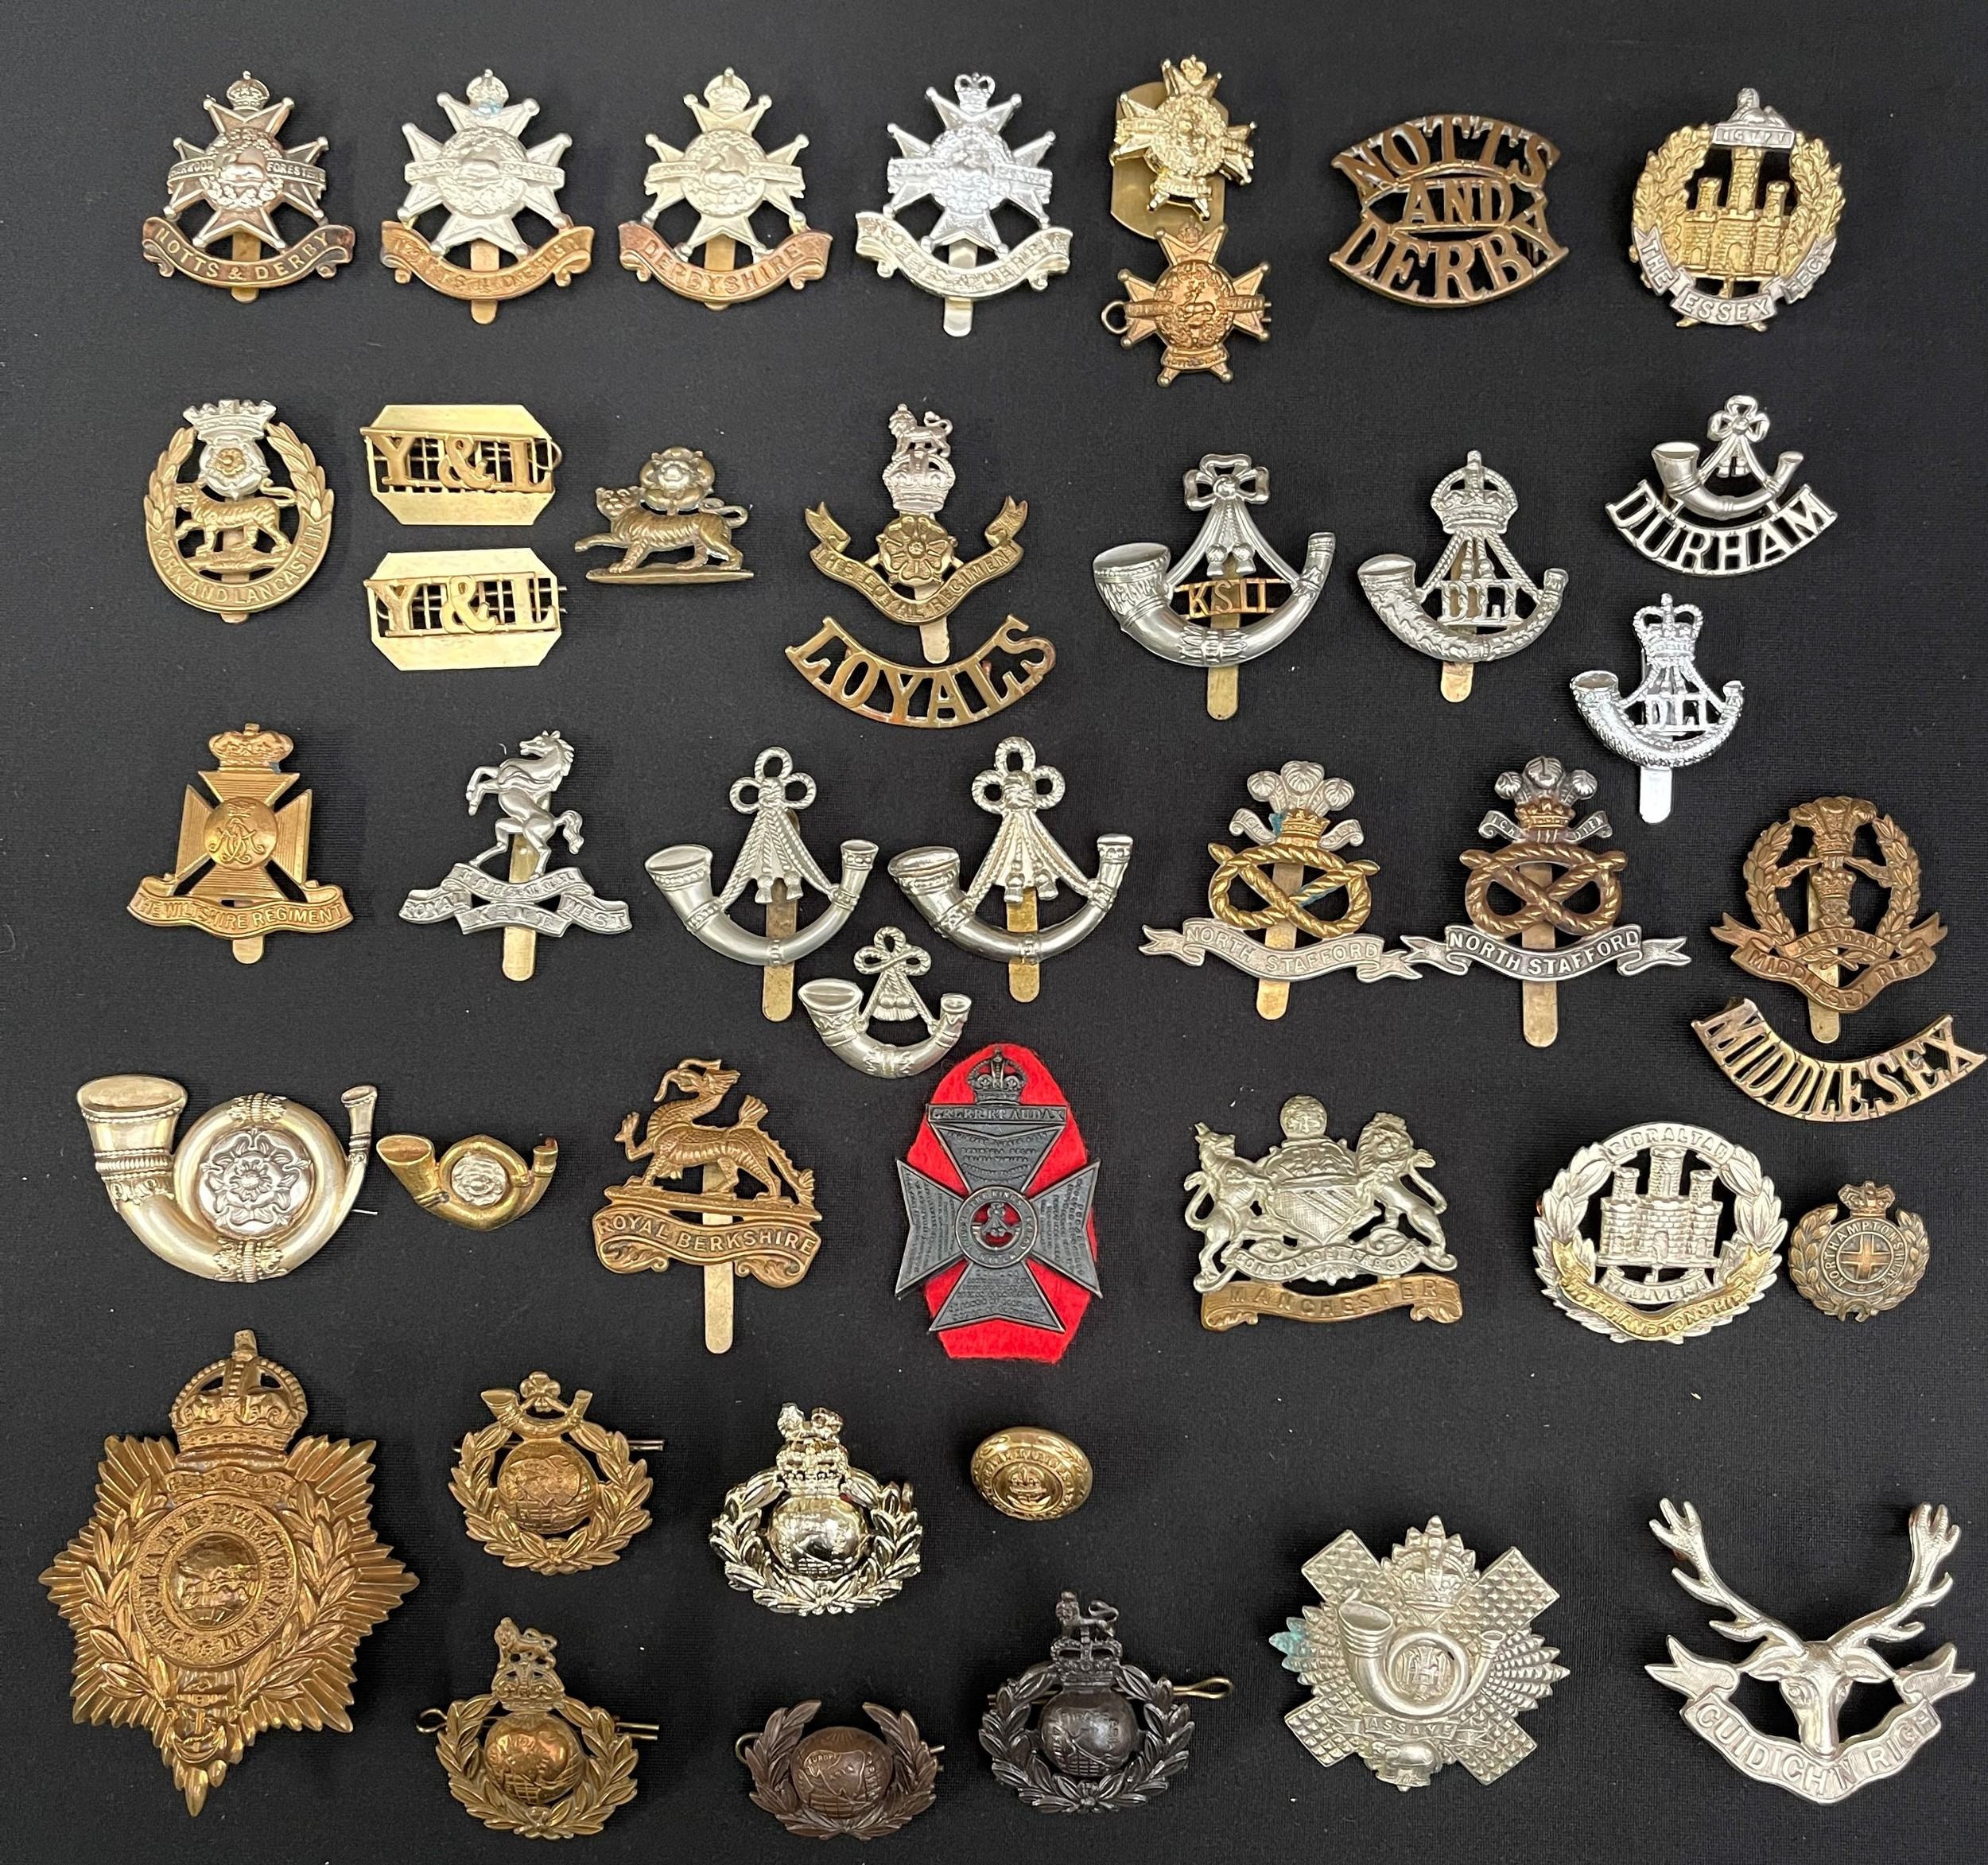 WW2 British Cap Badges, collar dogs and shoulder titles to include: Notts & Derbys x 4, collar